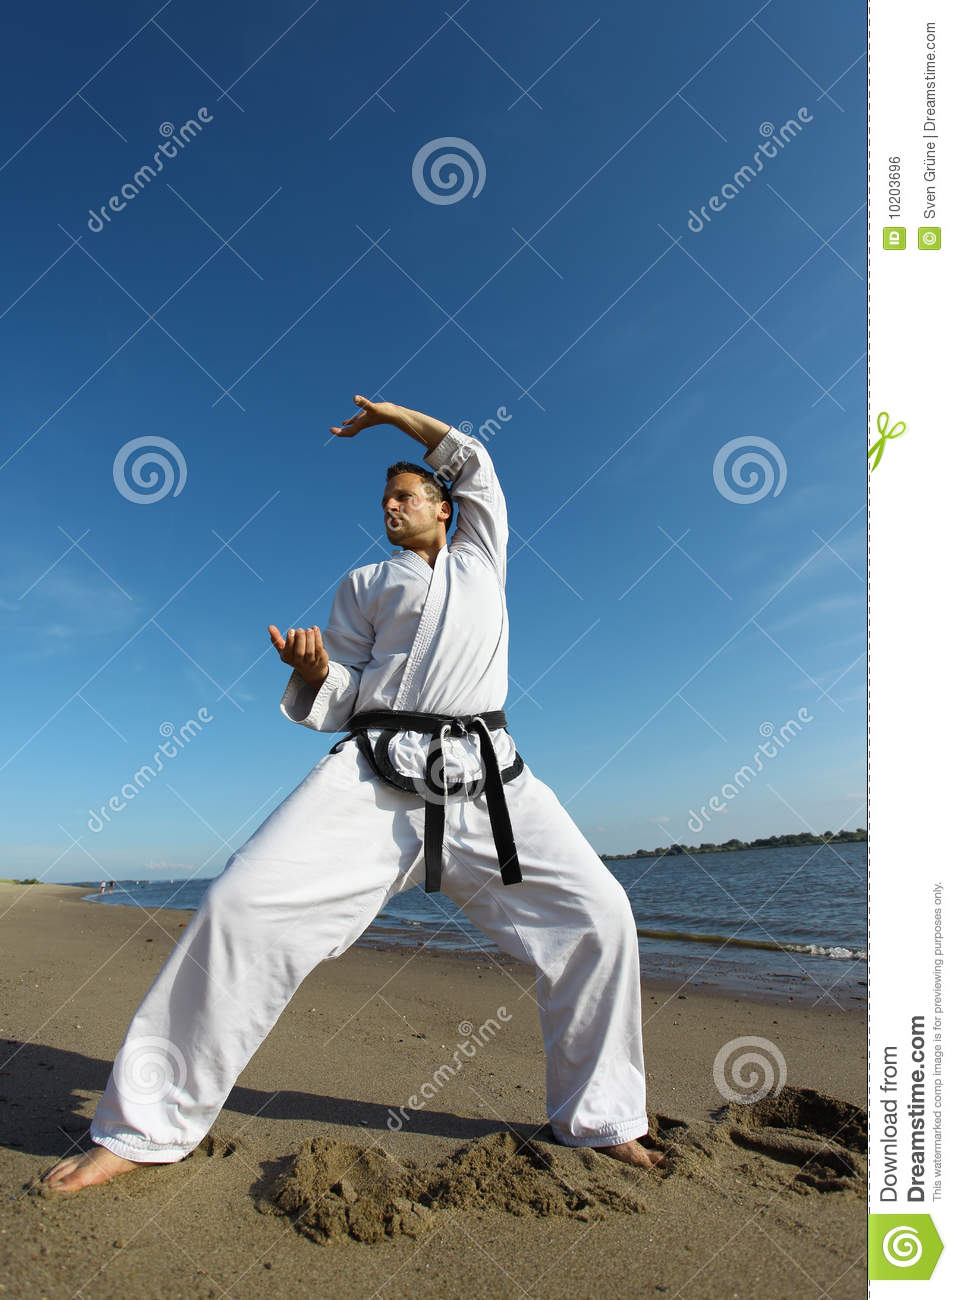 Download Judo stockfoto. Bild von karate, riemen, kata, kampf - 10203696